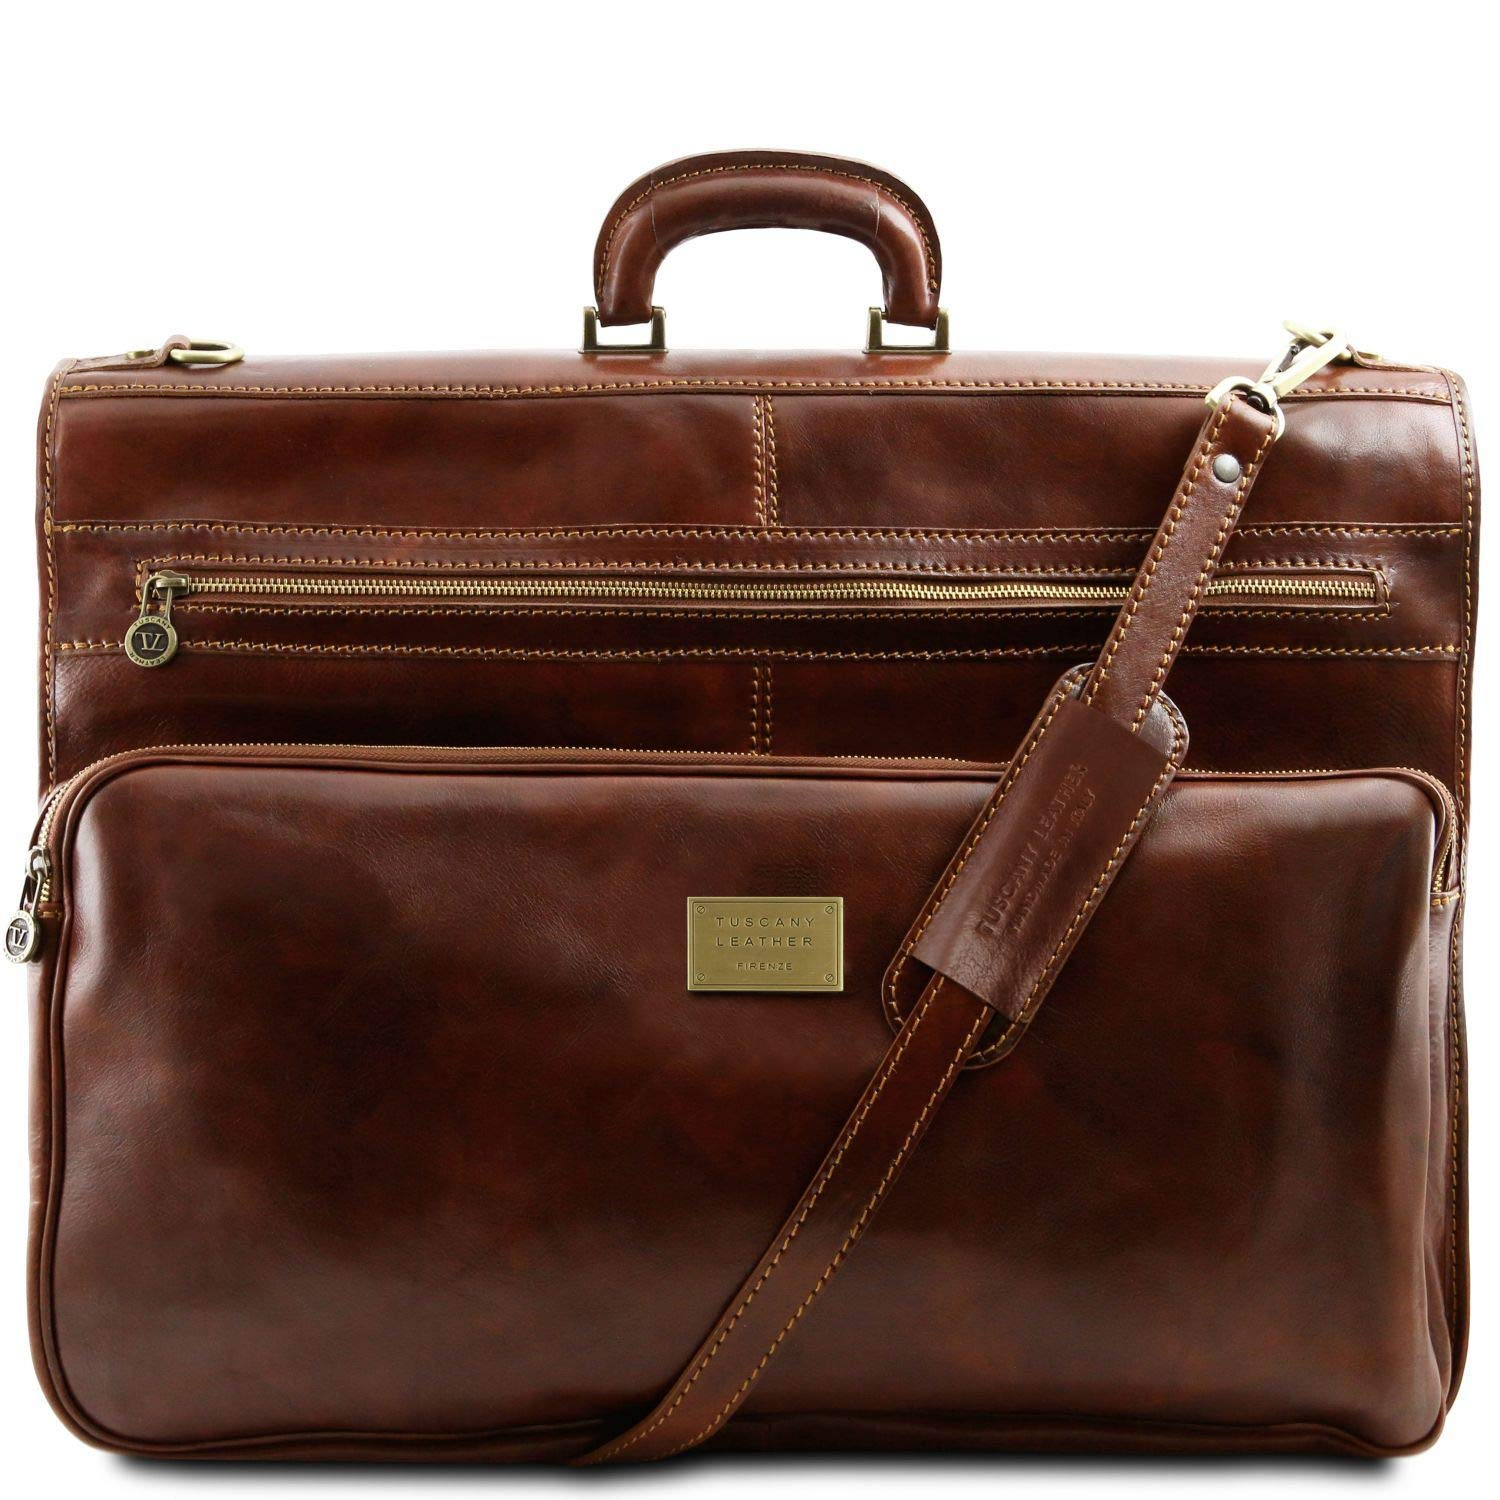 Tuscany Leather - Papeete - Garment leather bag Brown - TL3056/1